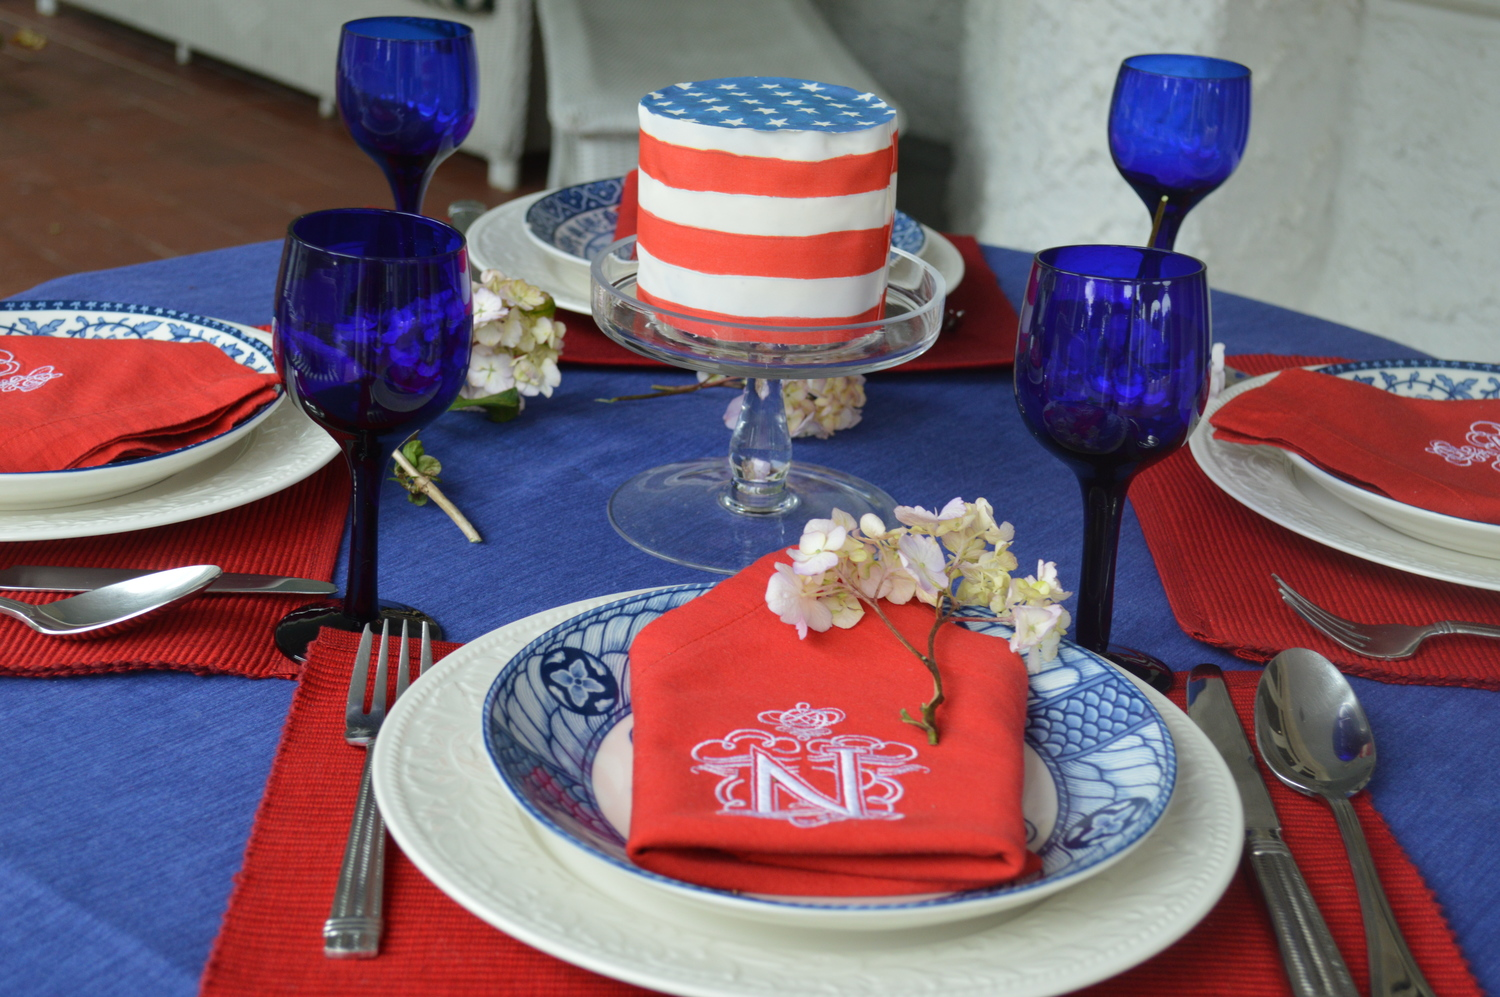 Chefanie's 4th of July Table. Custom napkins available  here , American flag Chefanie Sheet available  here